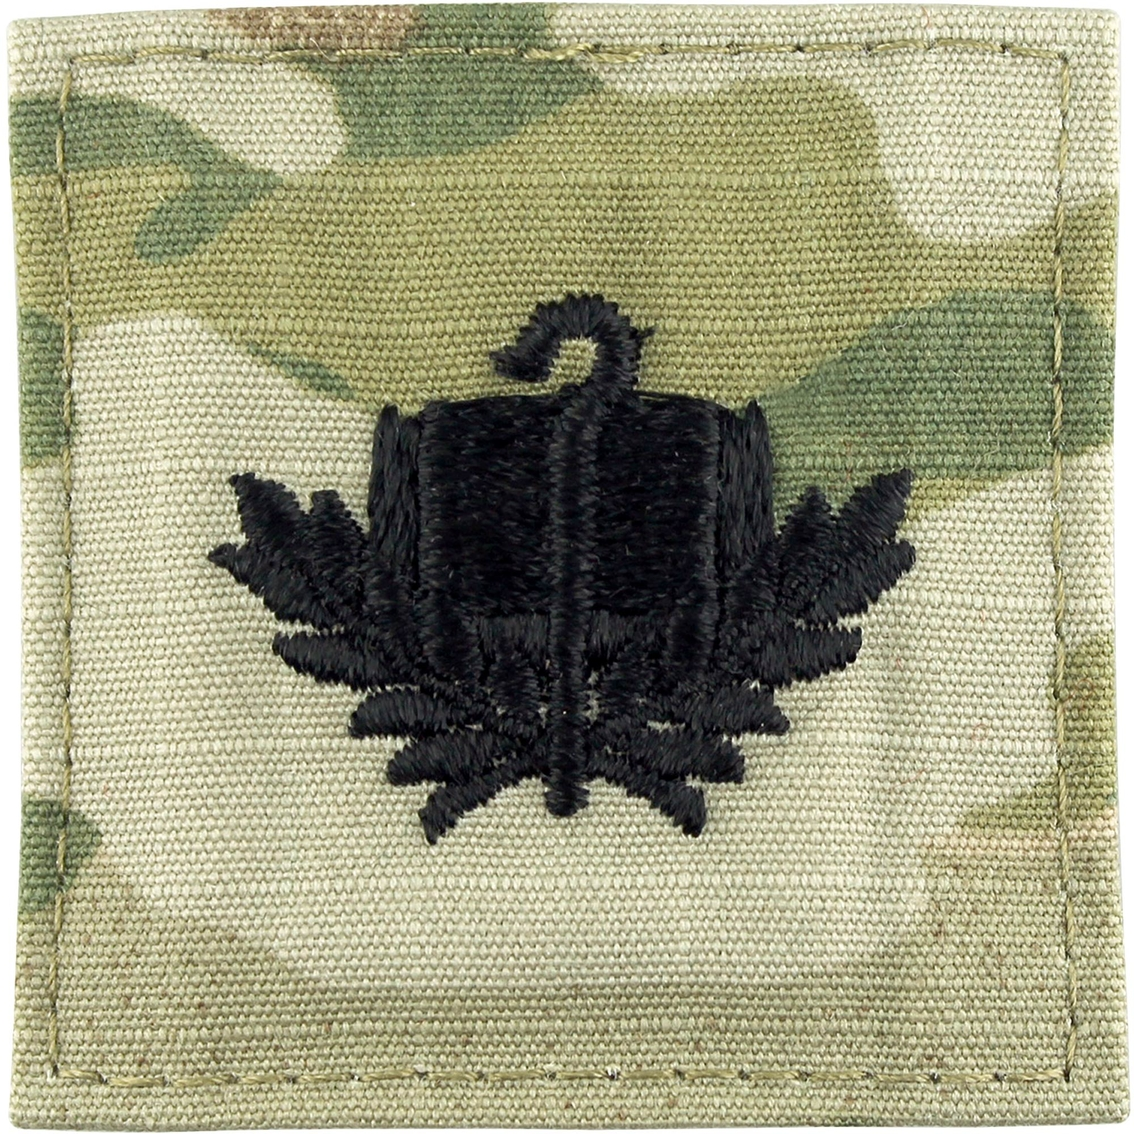 US Army Medical Corps Branch OD Green /& Black sewn set D